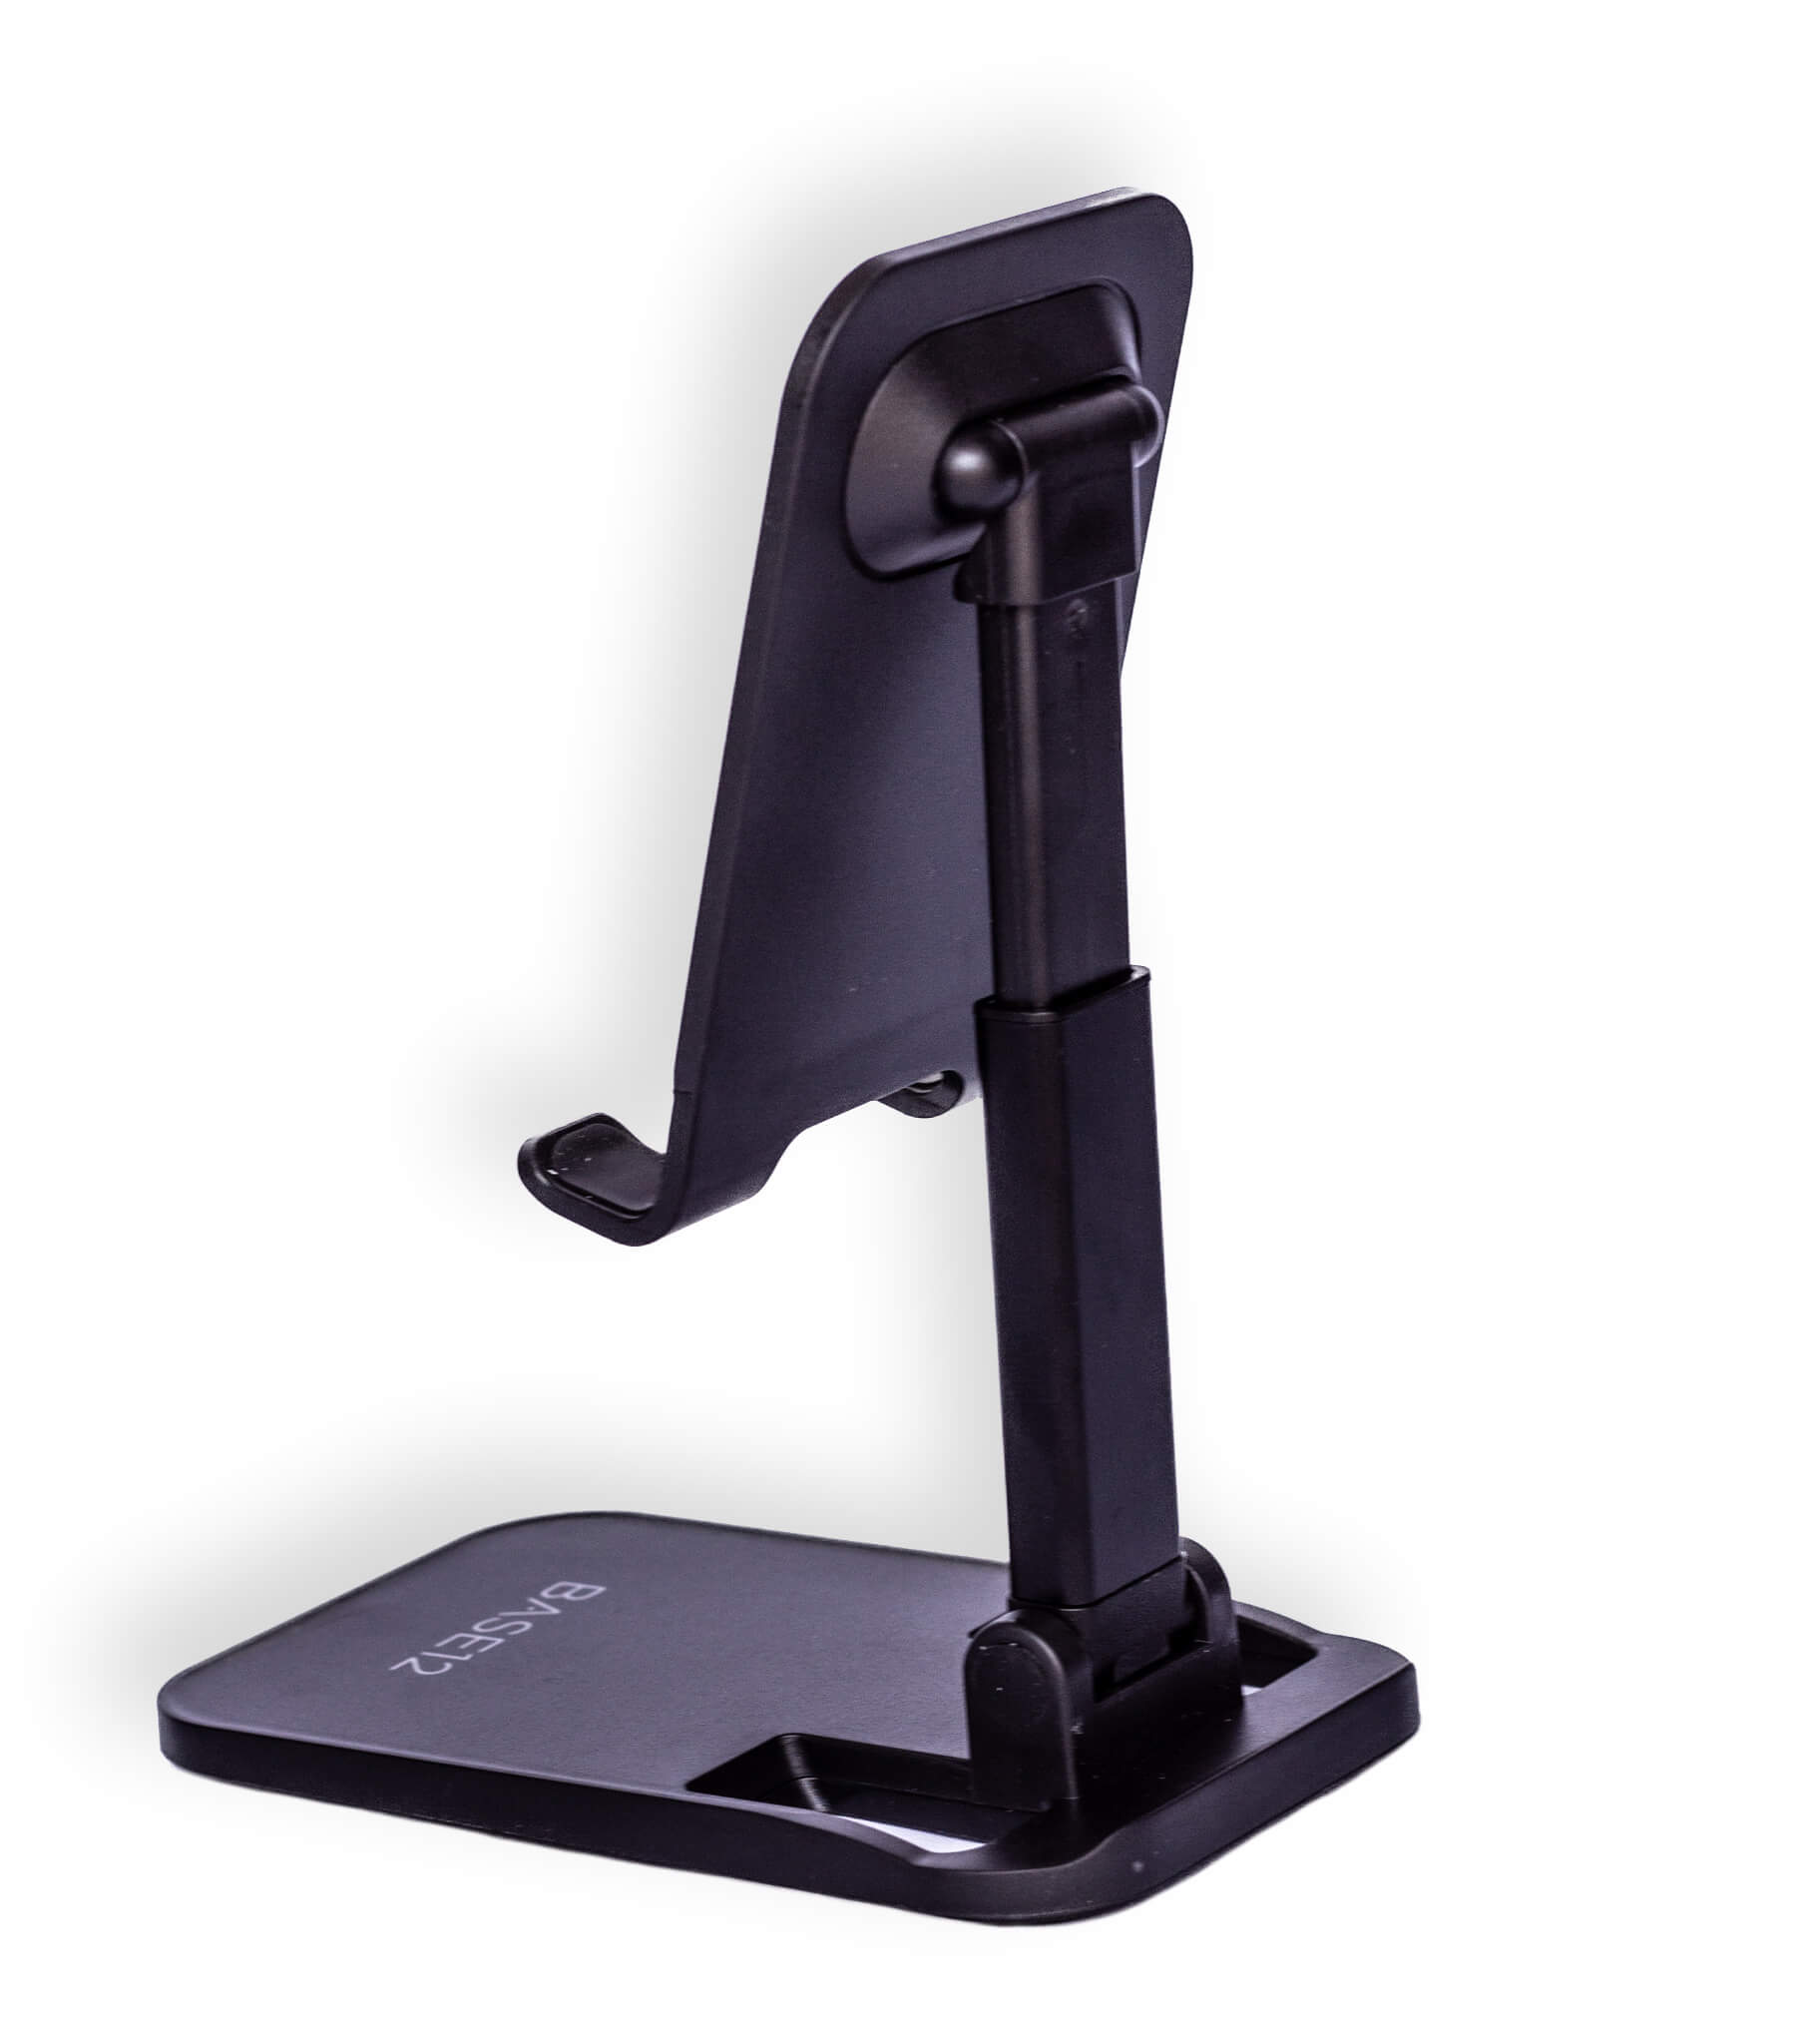 Portable Phone and Tablet Stand - Ergonomic, Height Adjustable and Foldable